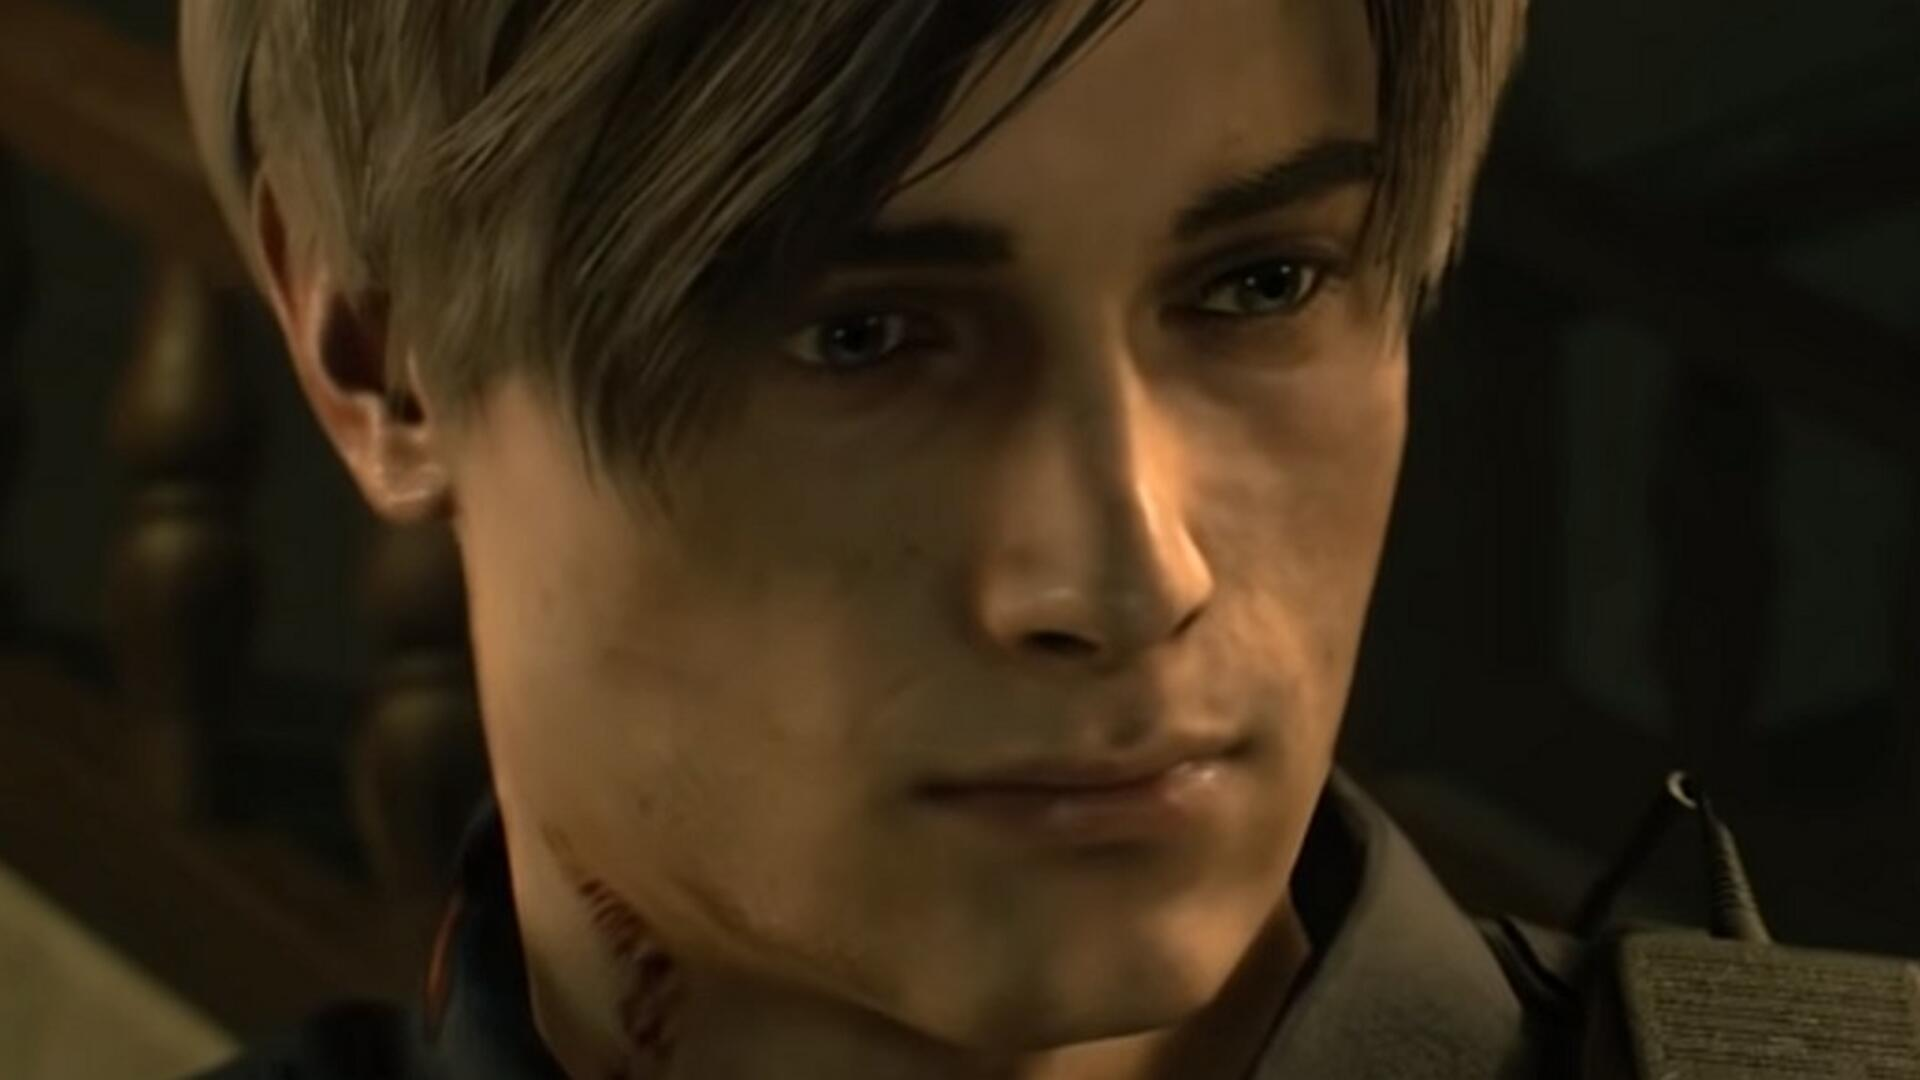 These Resident Evil 2 Remake Gameplay Videos are Jaw-Droppingly Good